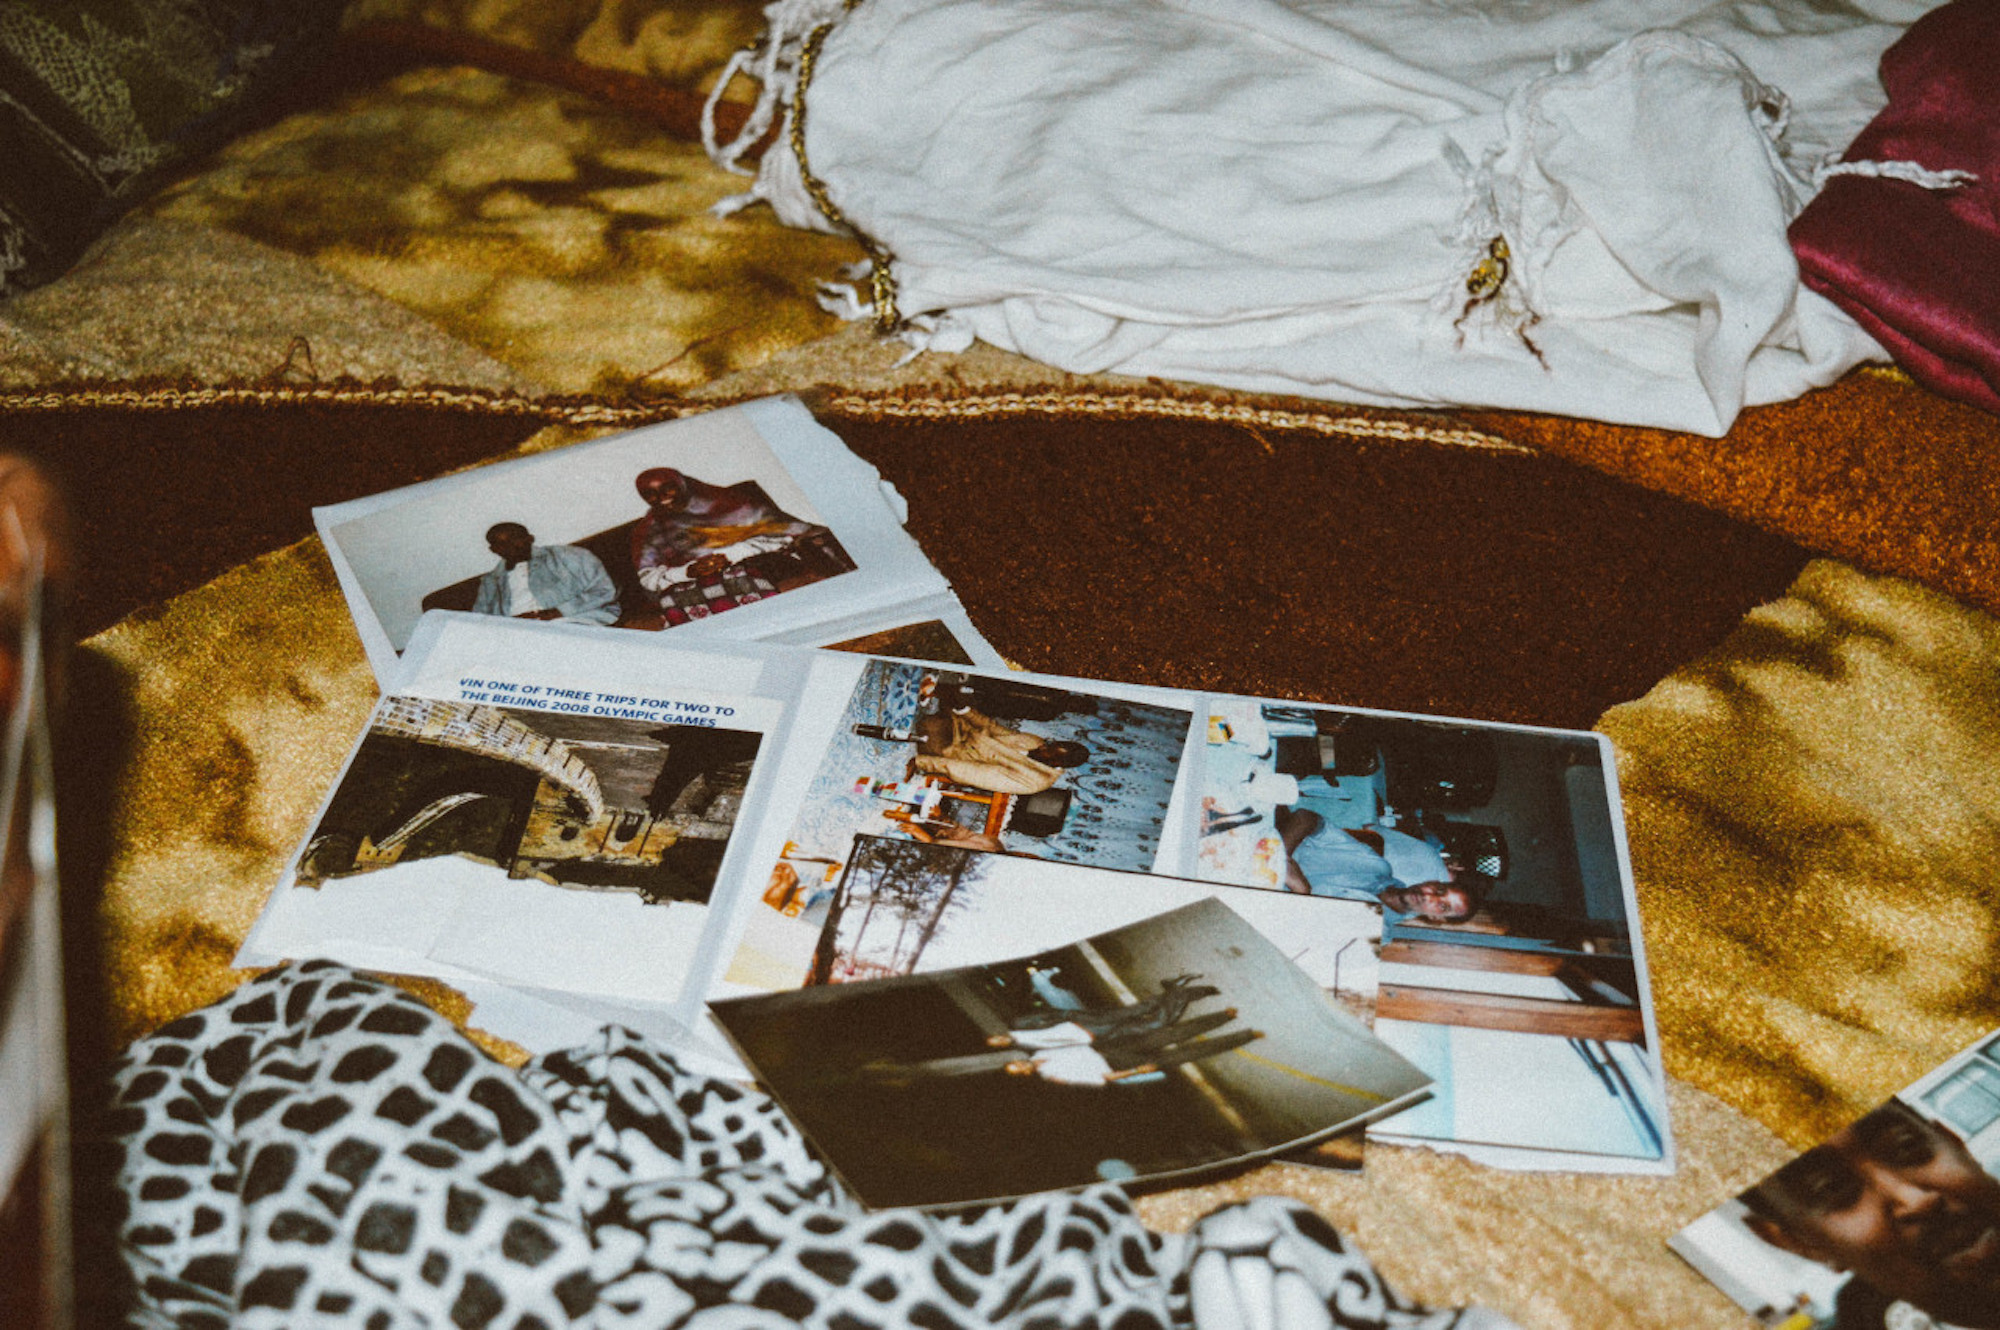 A selection of family photographs overlap on a bed